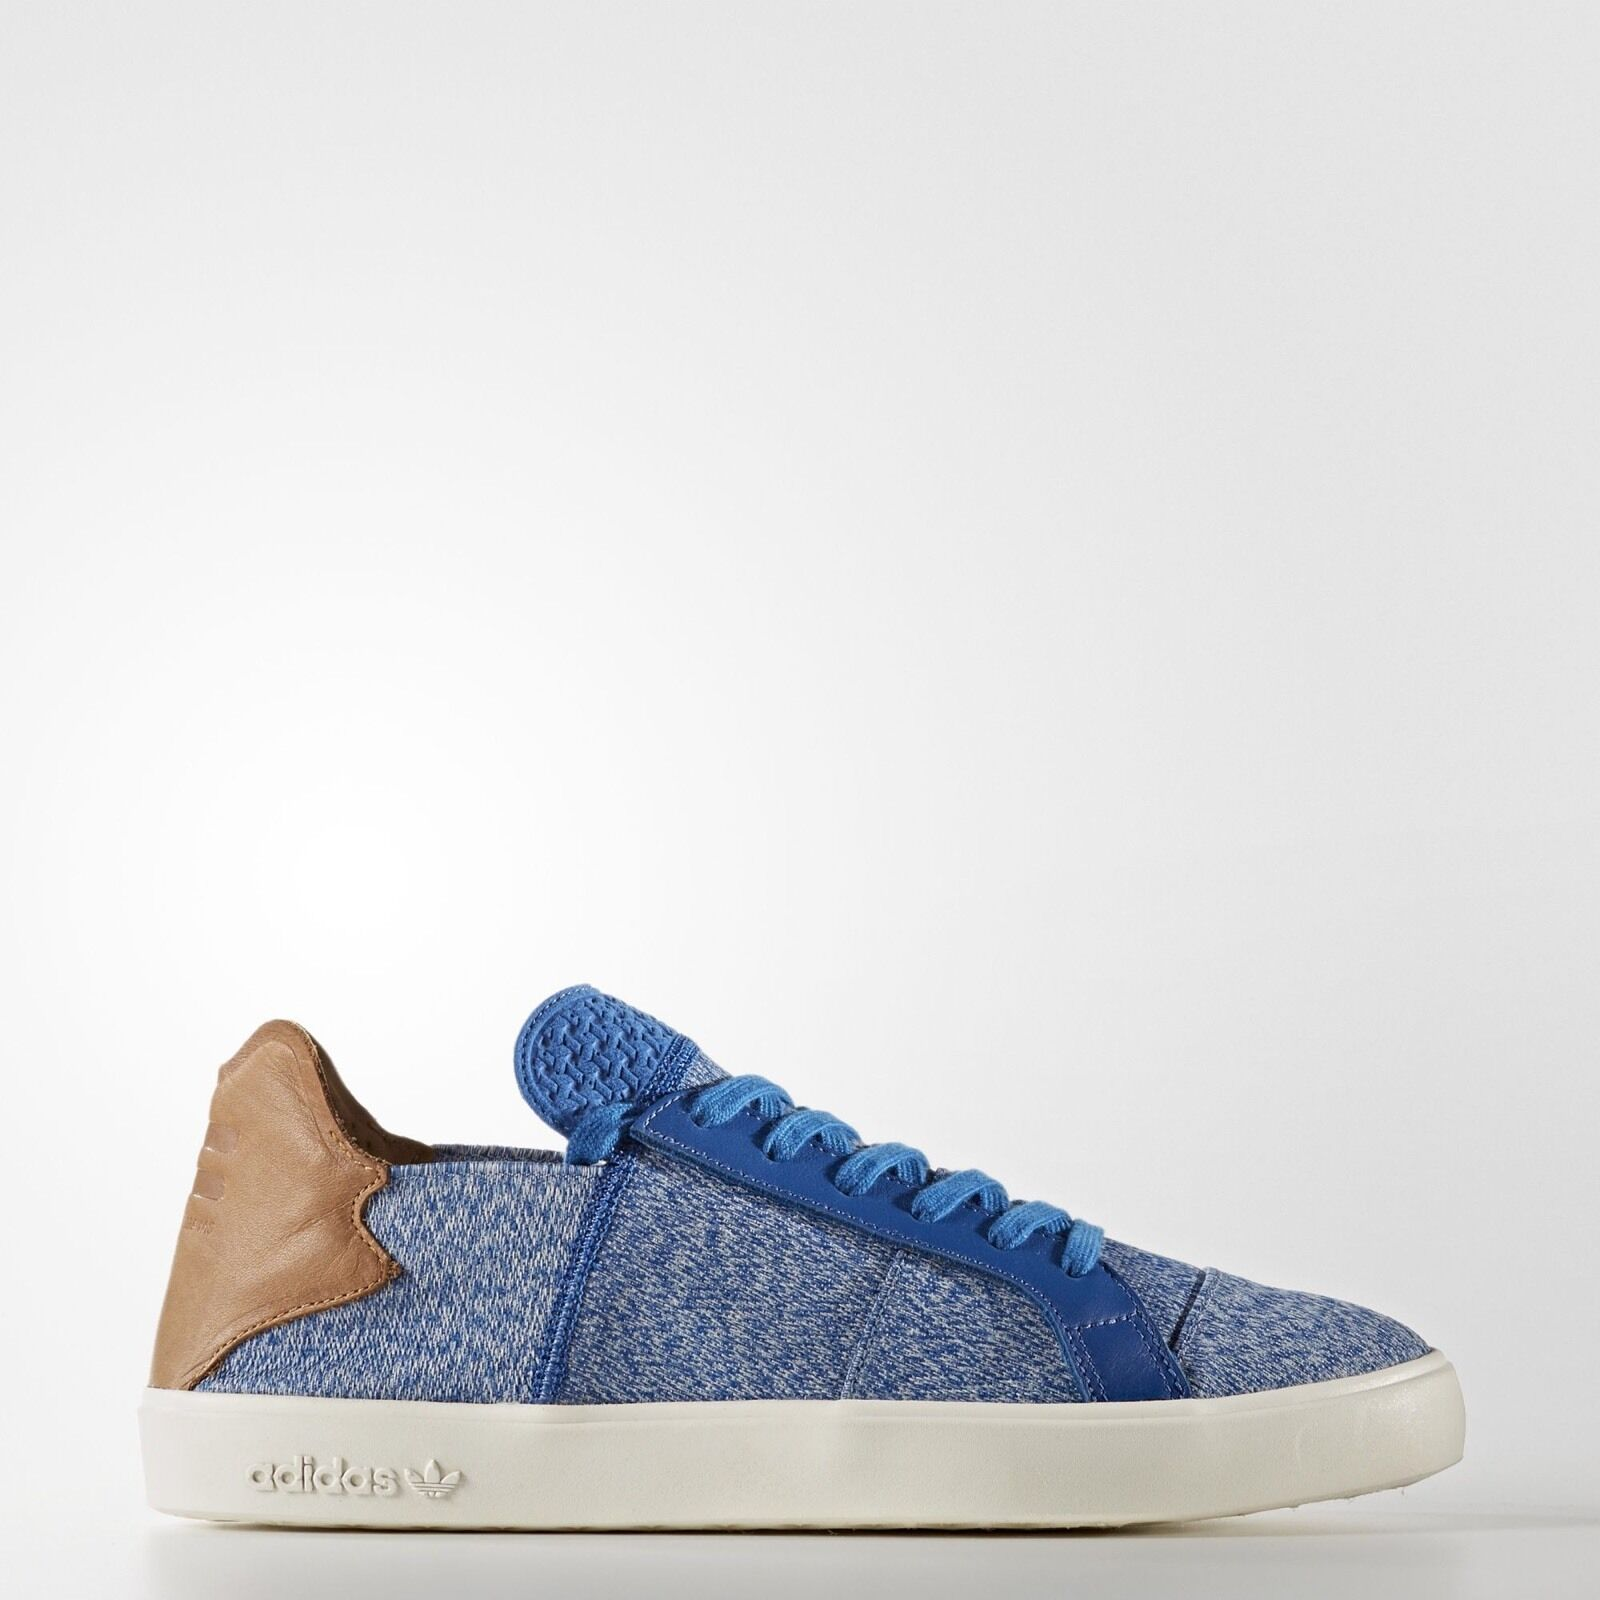 Adidas Vulc Lace Up PW Pharrell Williams AQ5779 Comfortable Great discount